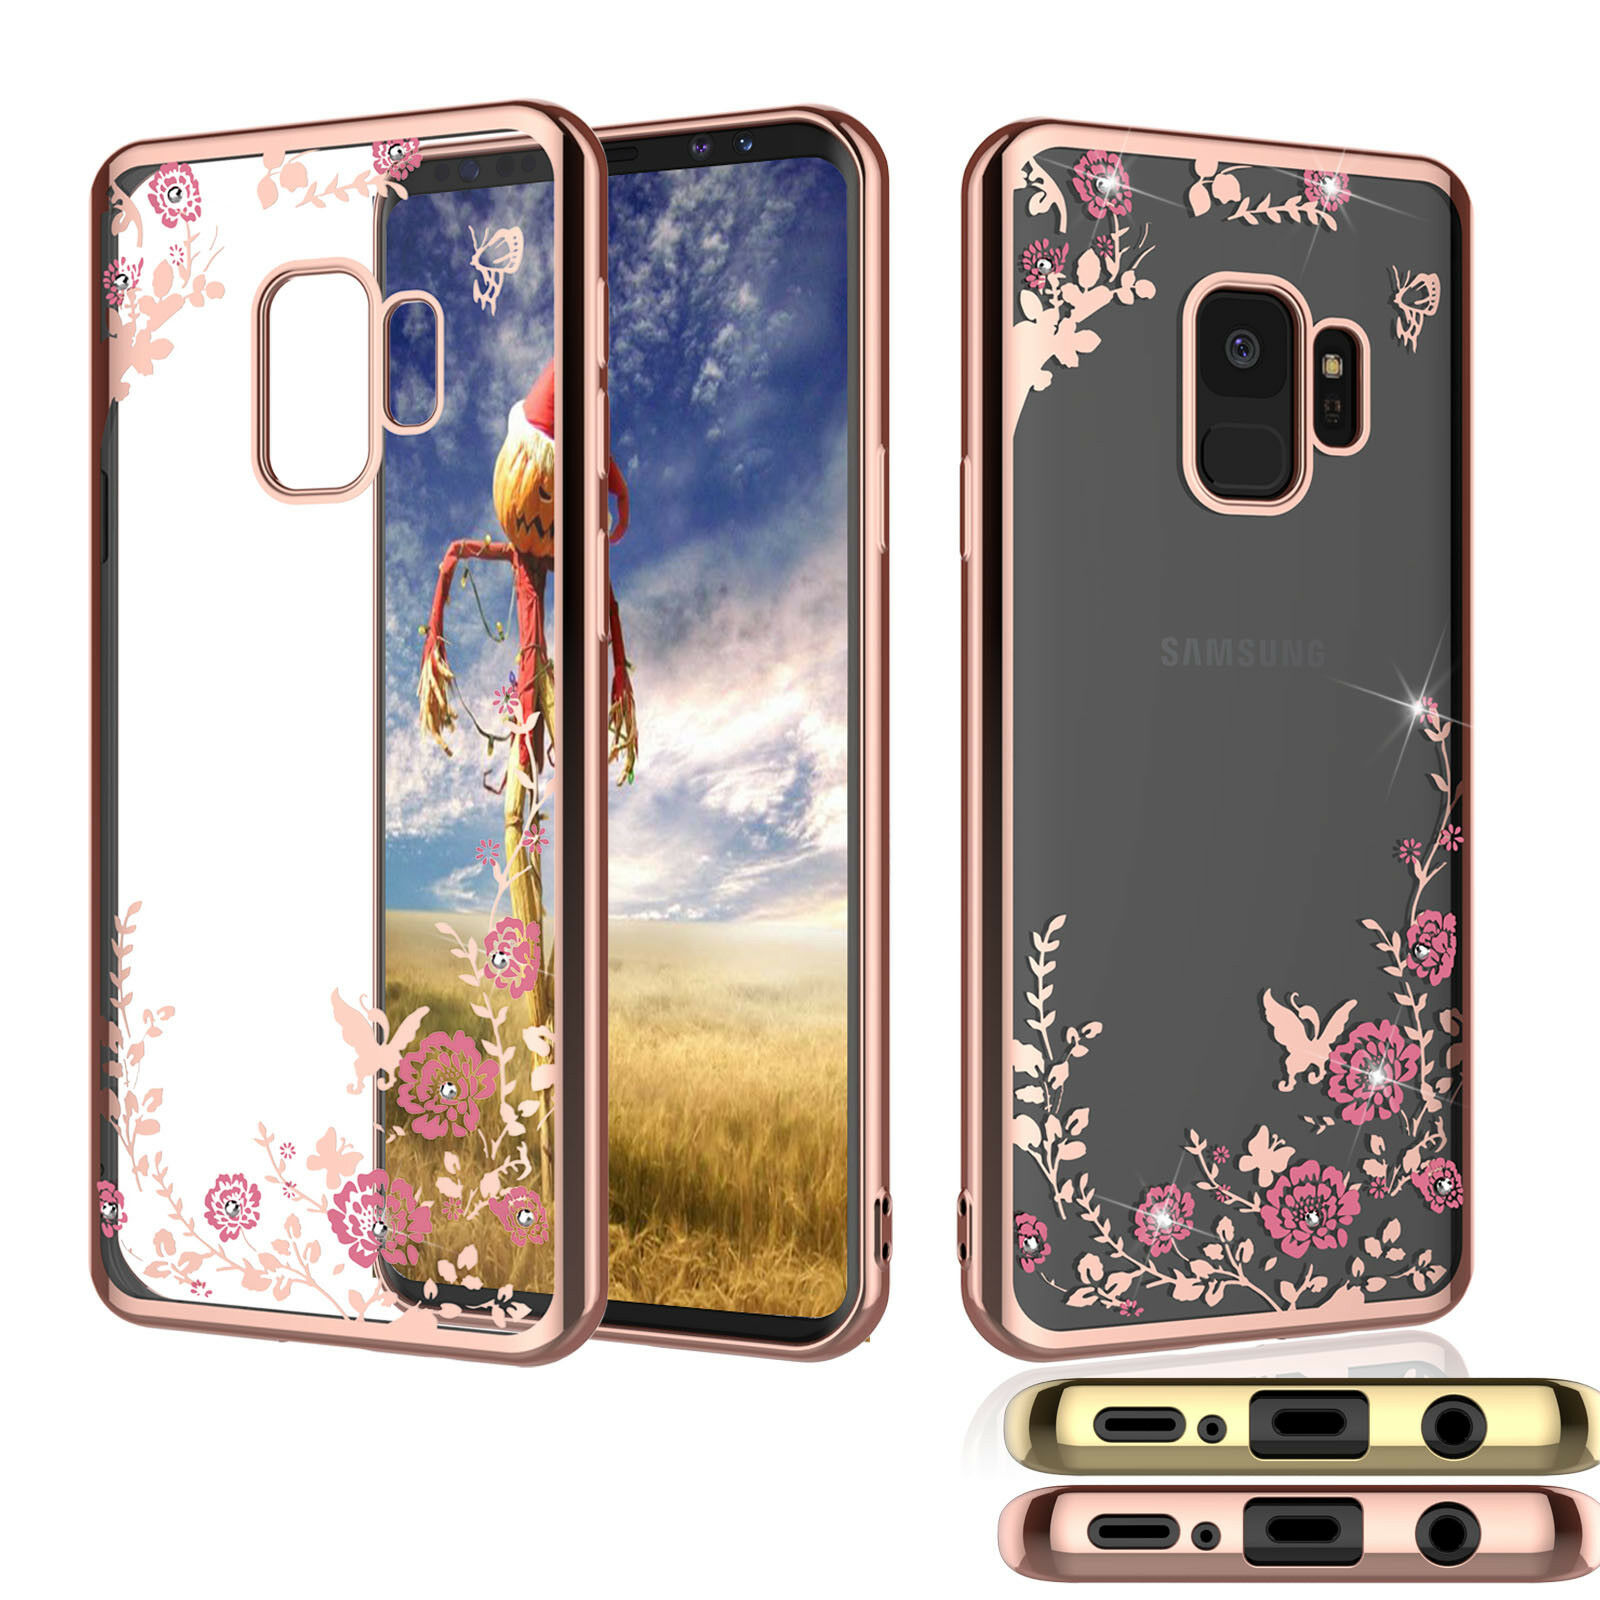 For Samsung Galaxy S9 / S9 Plus + Phone Case Crystal Bling Flower Clear Cover Cases, Covers & Skins